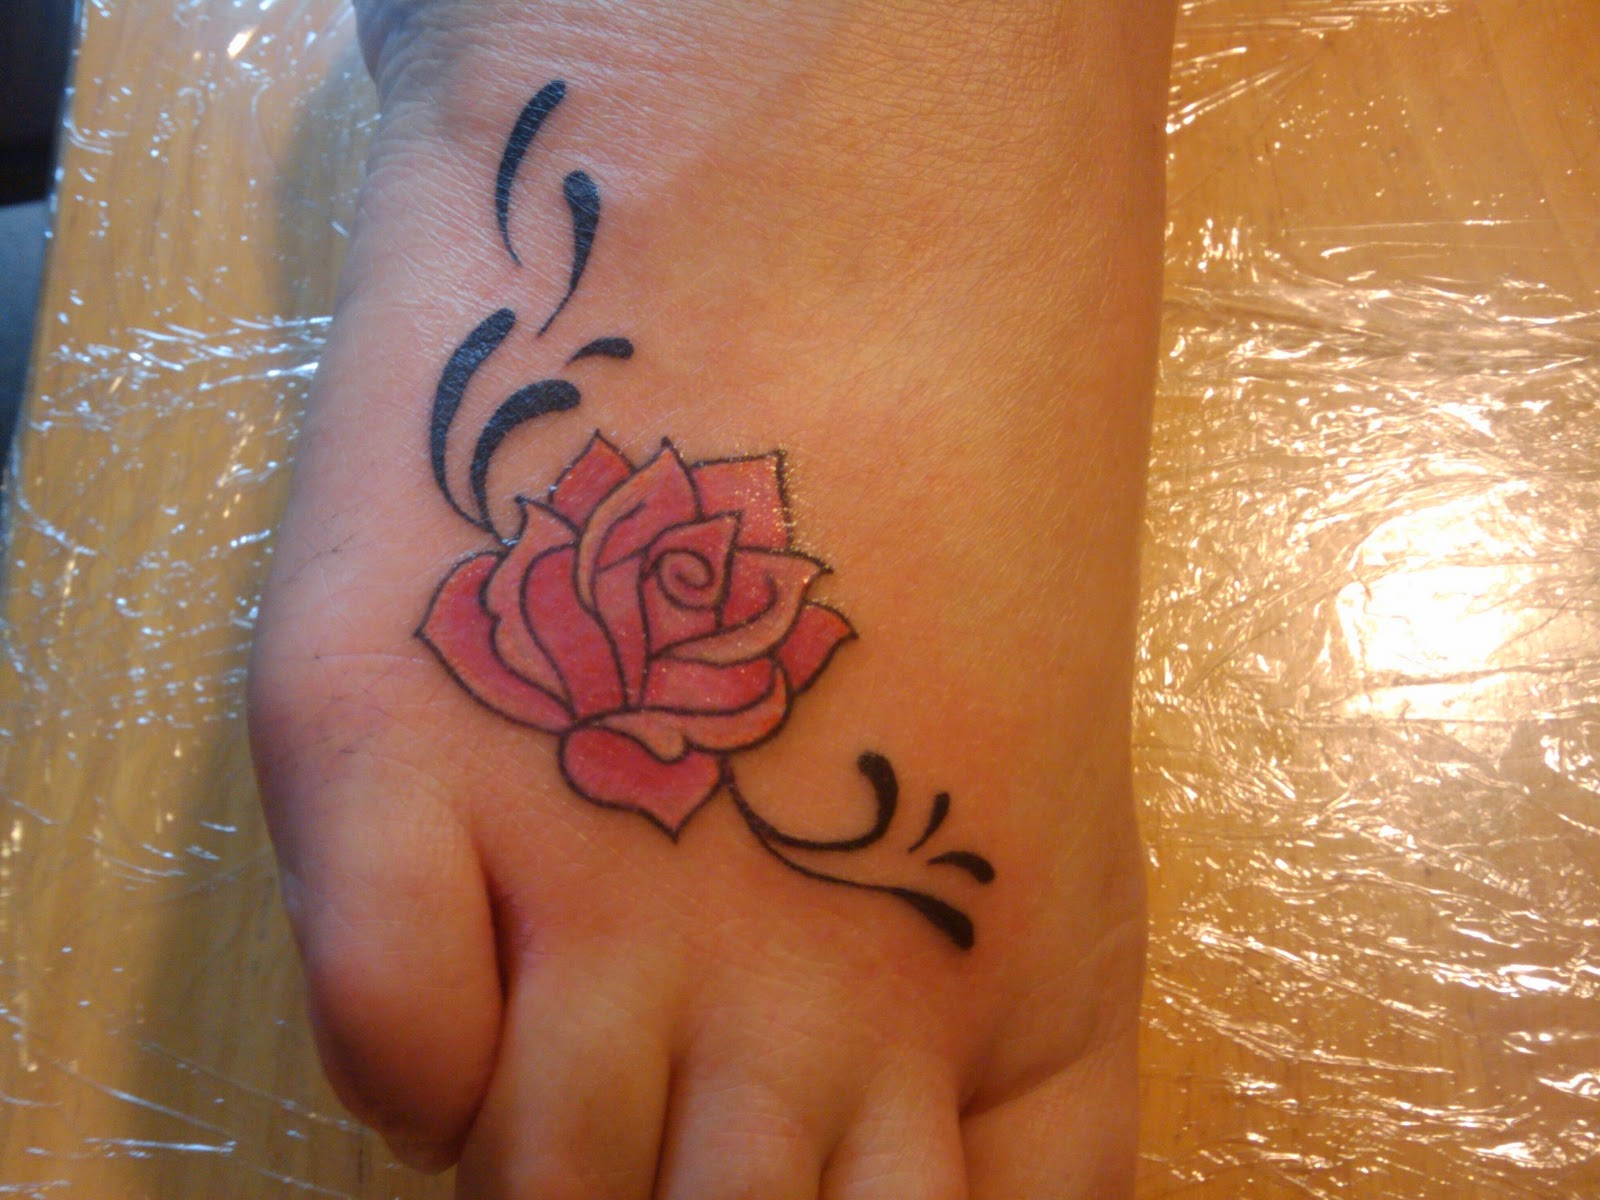 Tattoo Of Rose Small: Rose Tattoos Designs, Ideas And Meaning